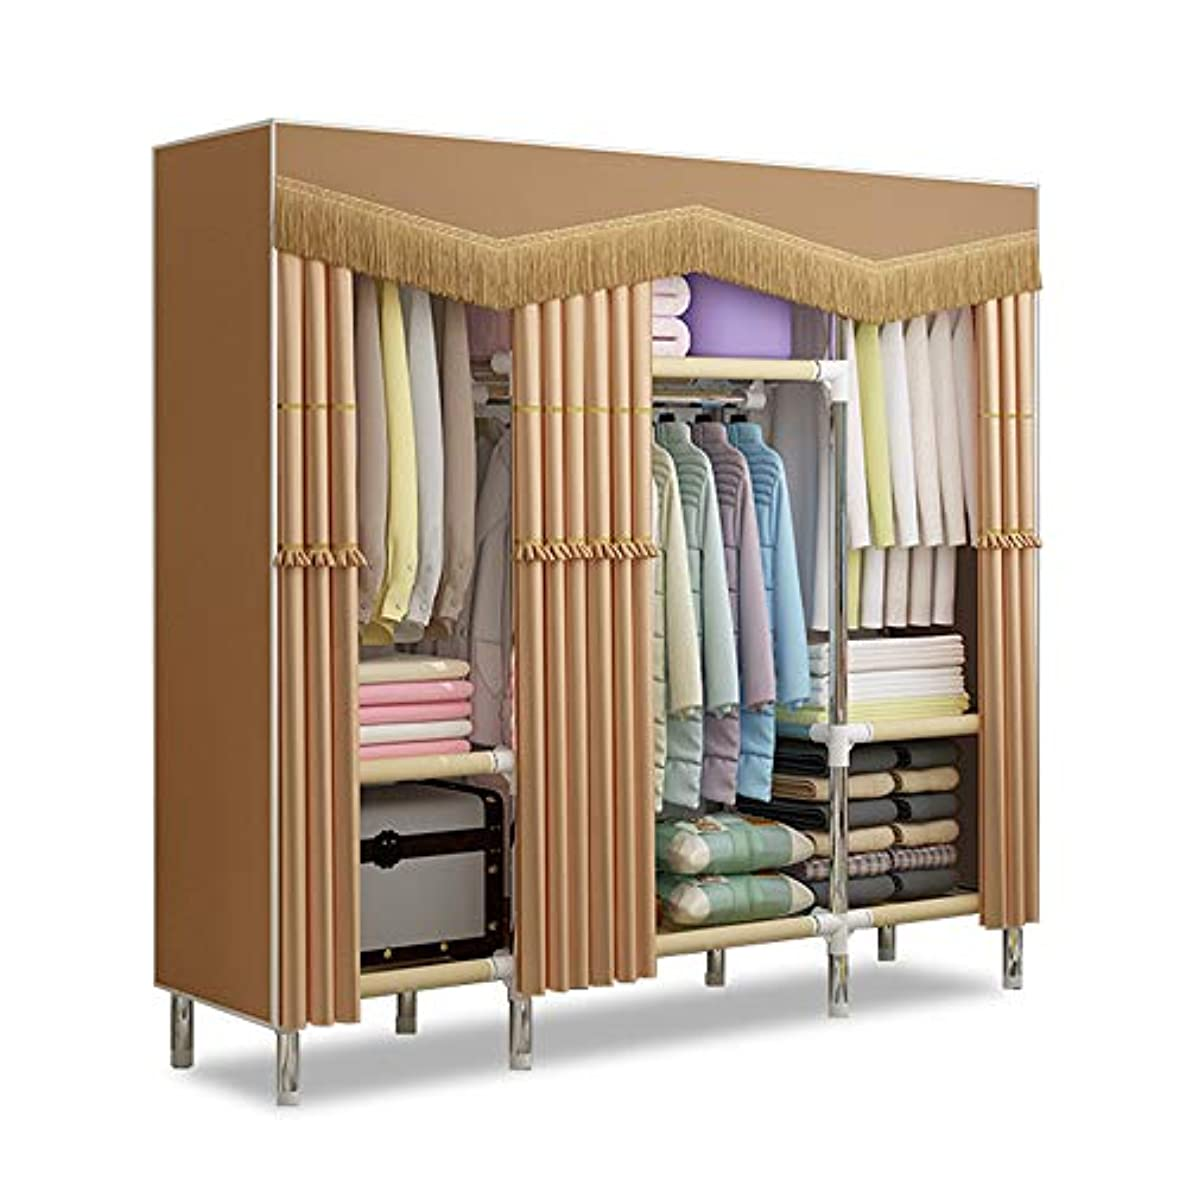 Ybriefbag-Home Convenient Assembly Bedroom Furniture Clothes Closet Thick Curtain Fabric Cloth Wardrobe Folding Cloth Storage Organizer Storage Cabinet Simple Modern